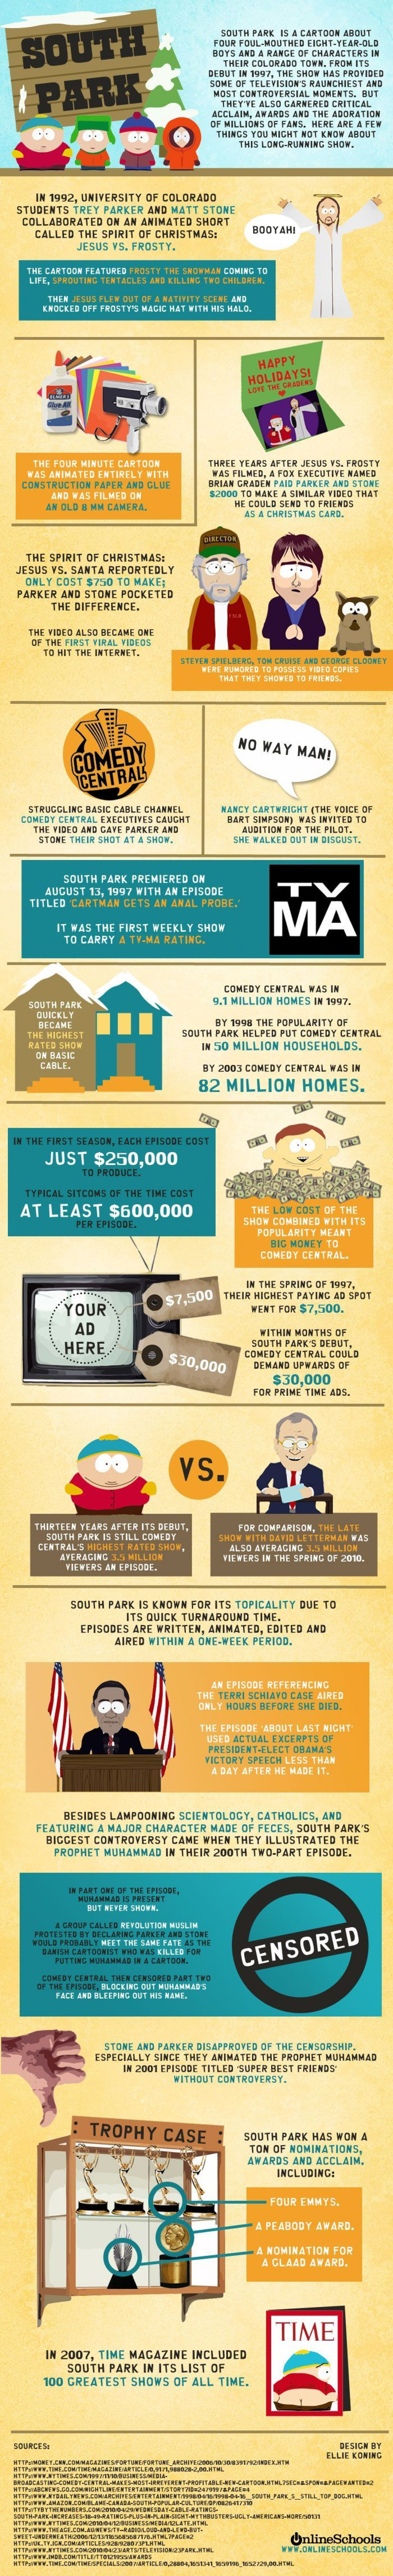 South Park: Everything You Might Not Know Infographic